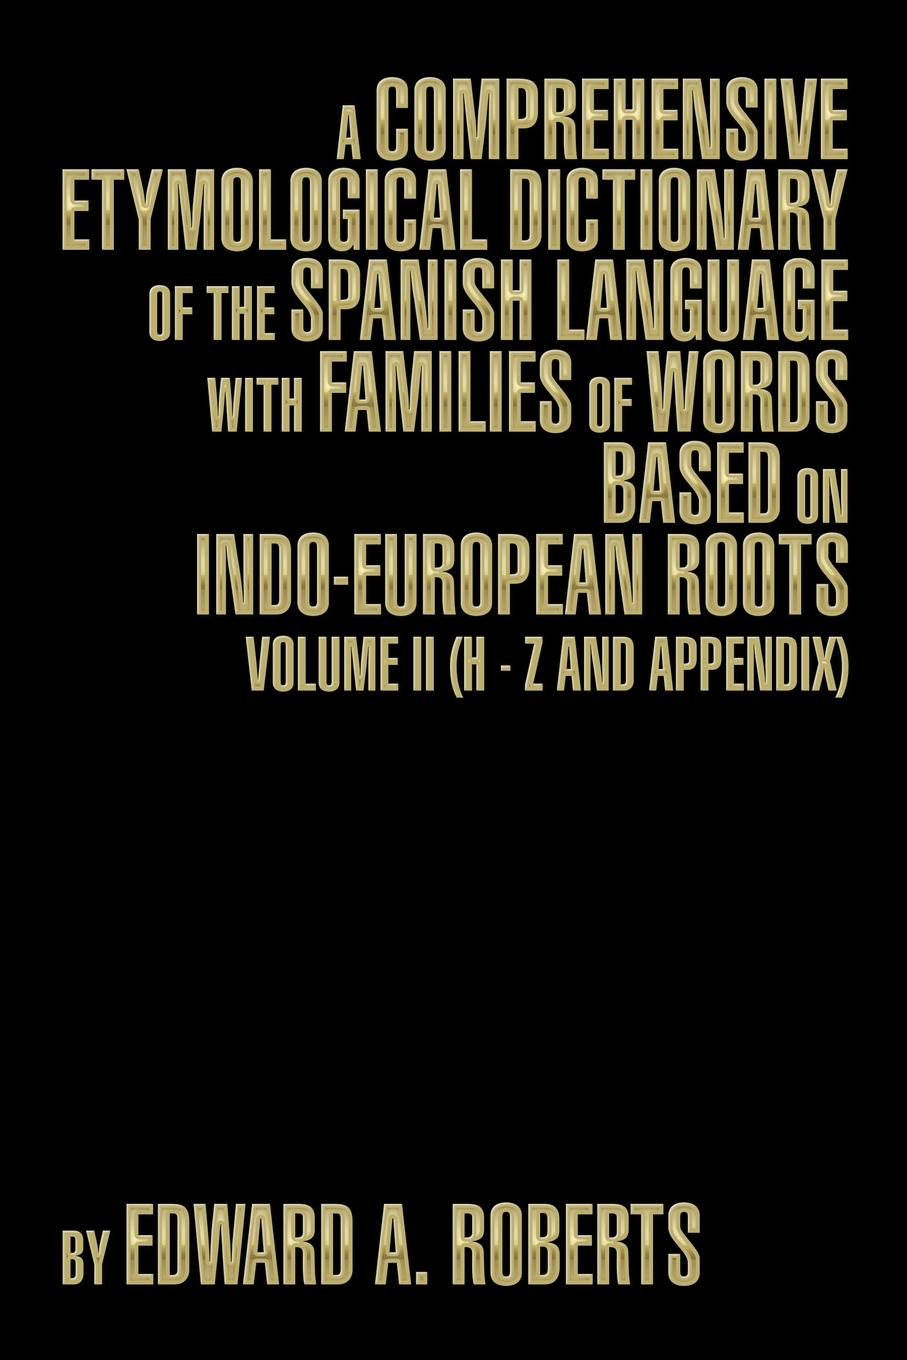 Edward a. Roberts A Comprehensive Etymological Dictionary of the Spanish Language with Families of Words Based on Indo-European Roots. Volume II (H - Z and Appendix) w chambers etymological dictionary of the english language